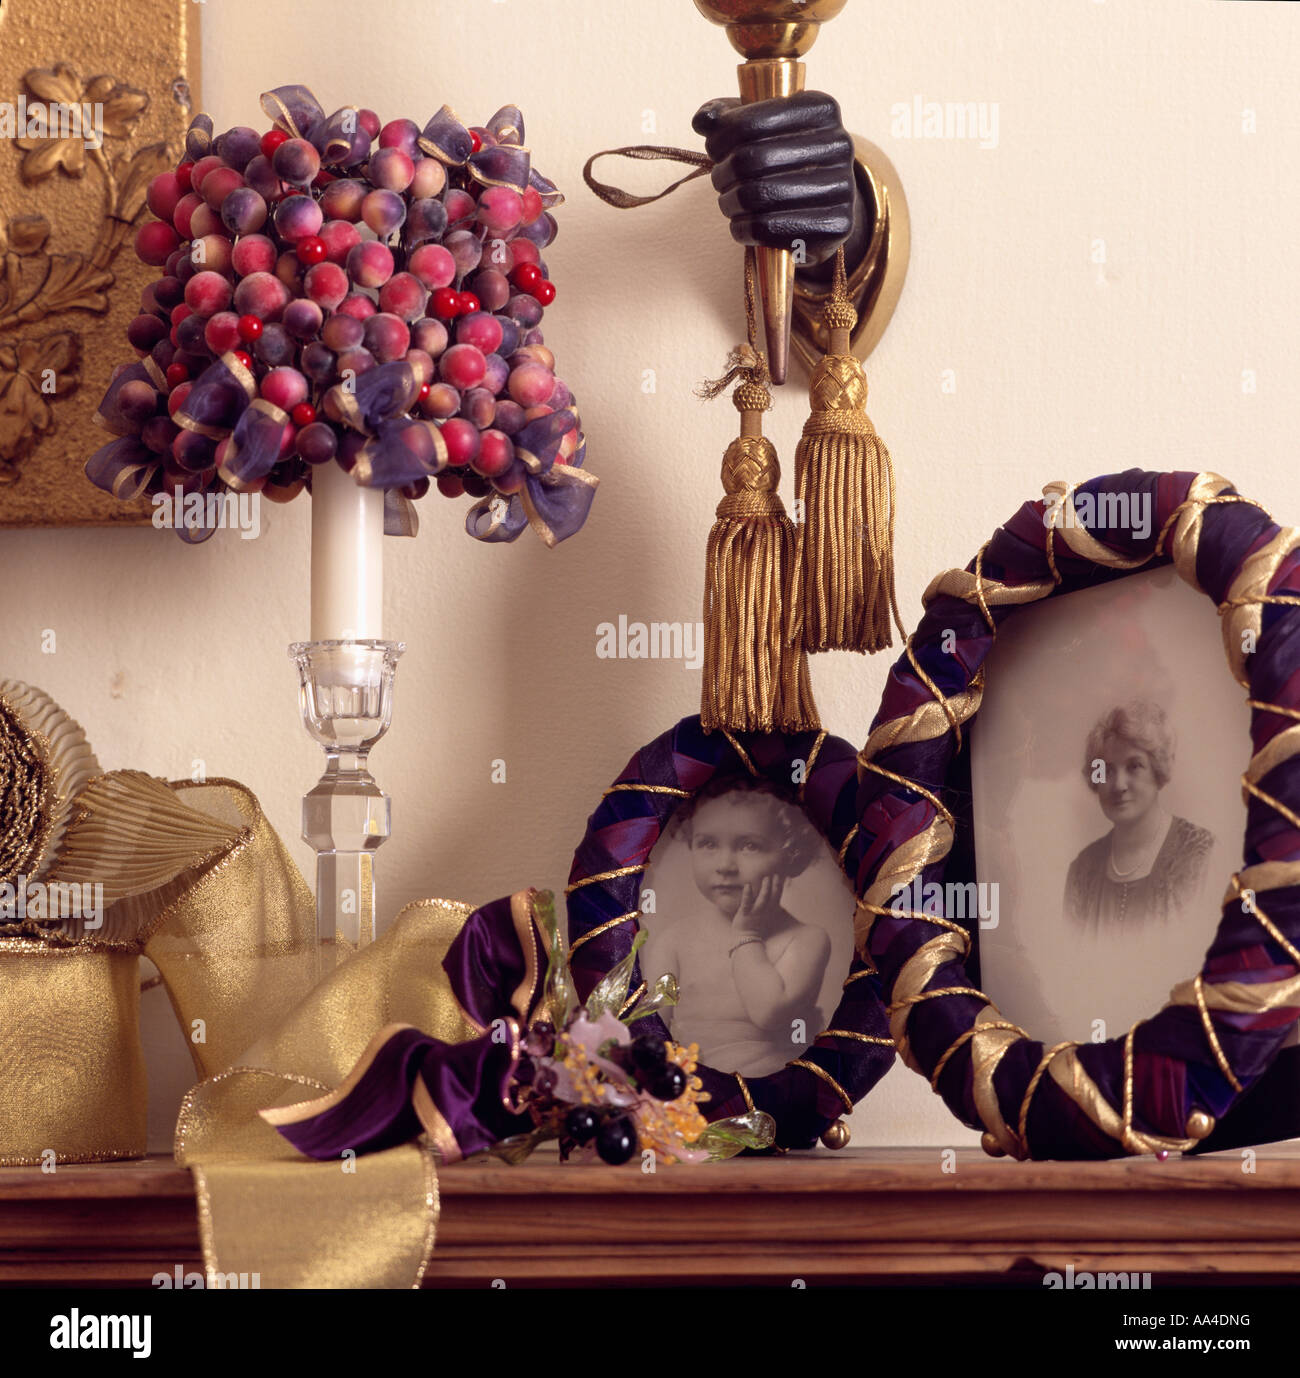 Purple And Gold Circular Photograph Frames On Shelf With Small Dried